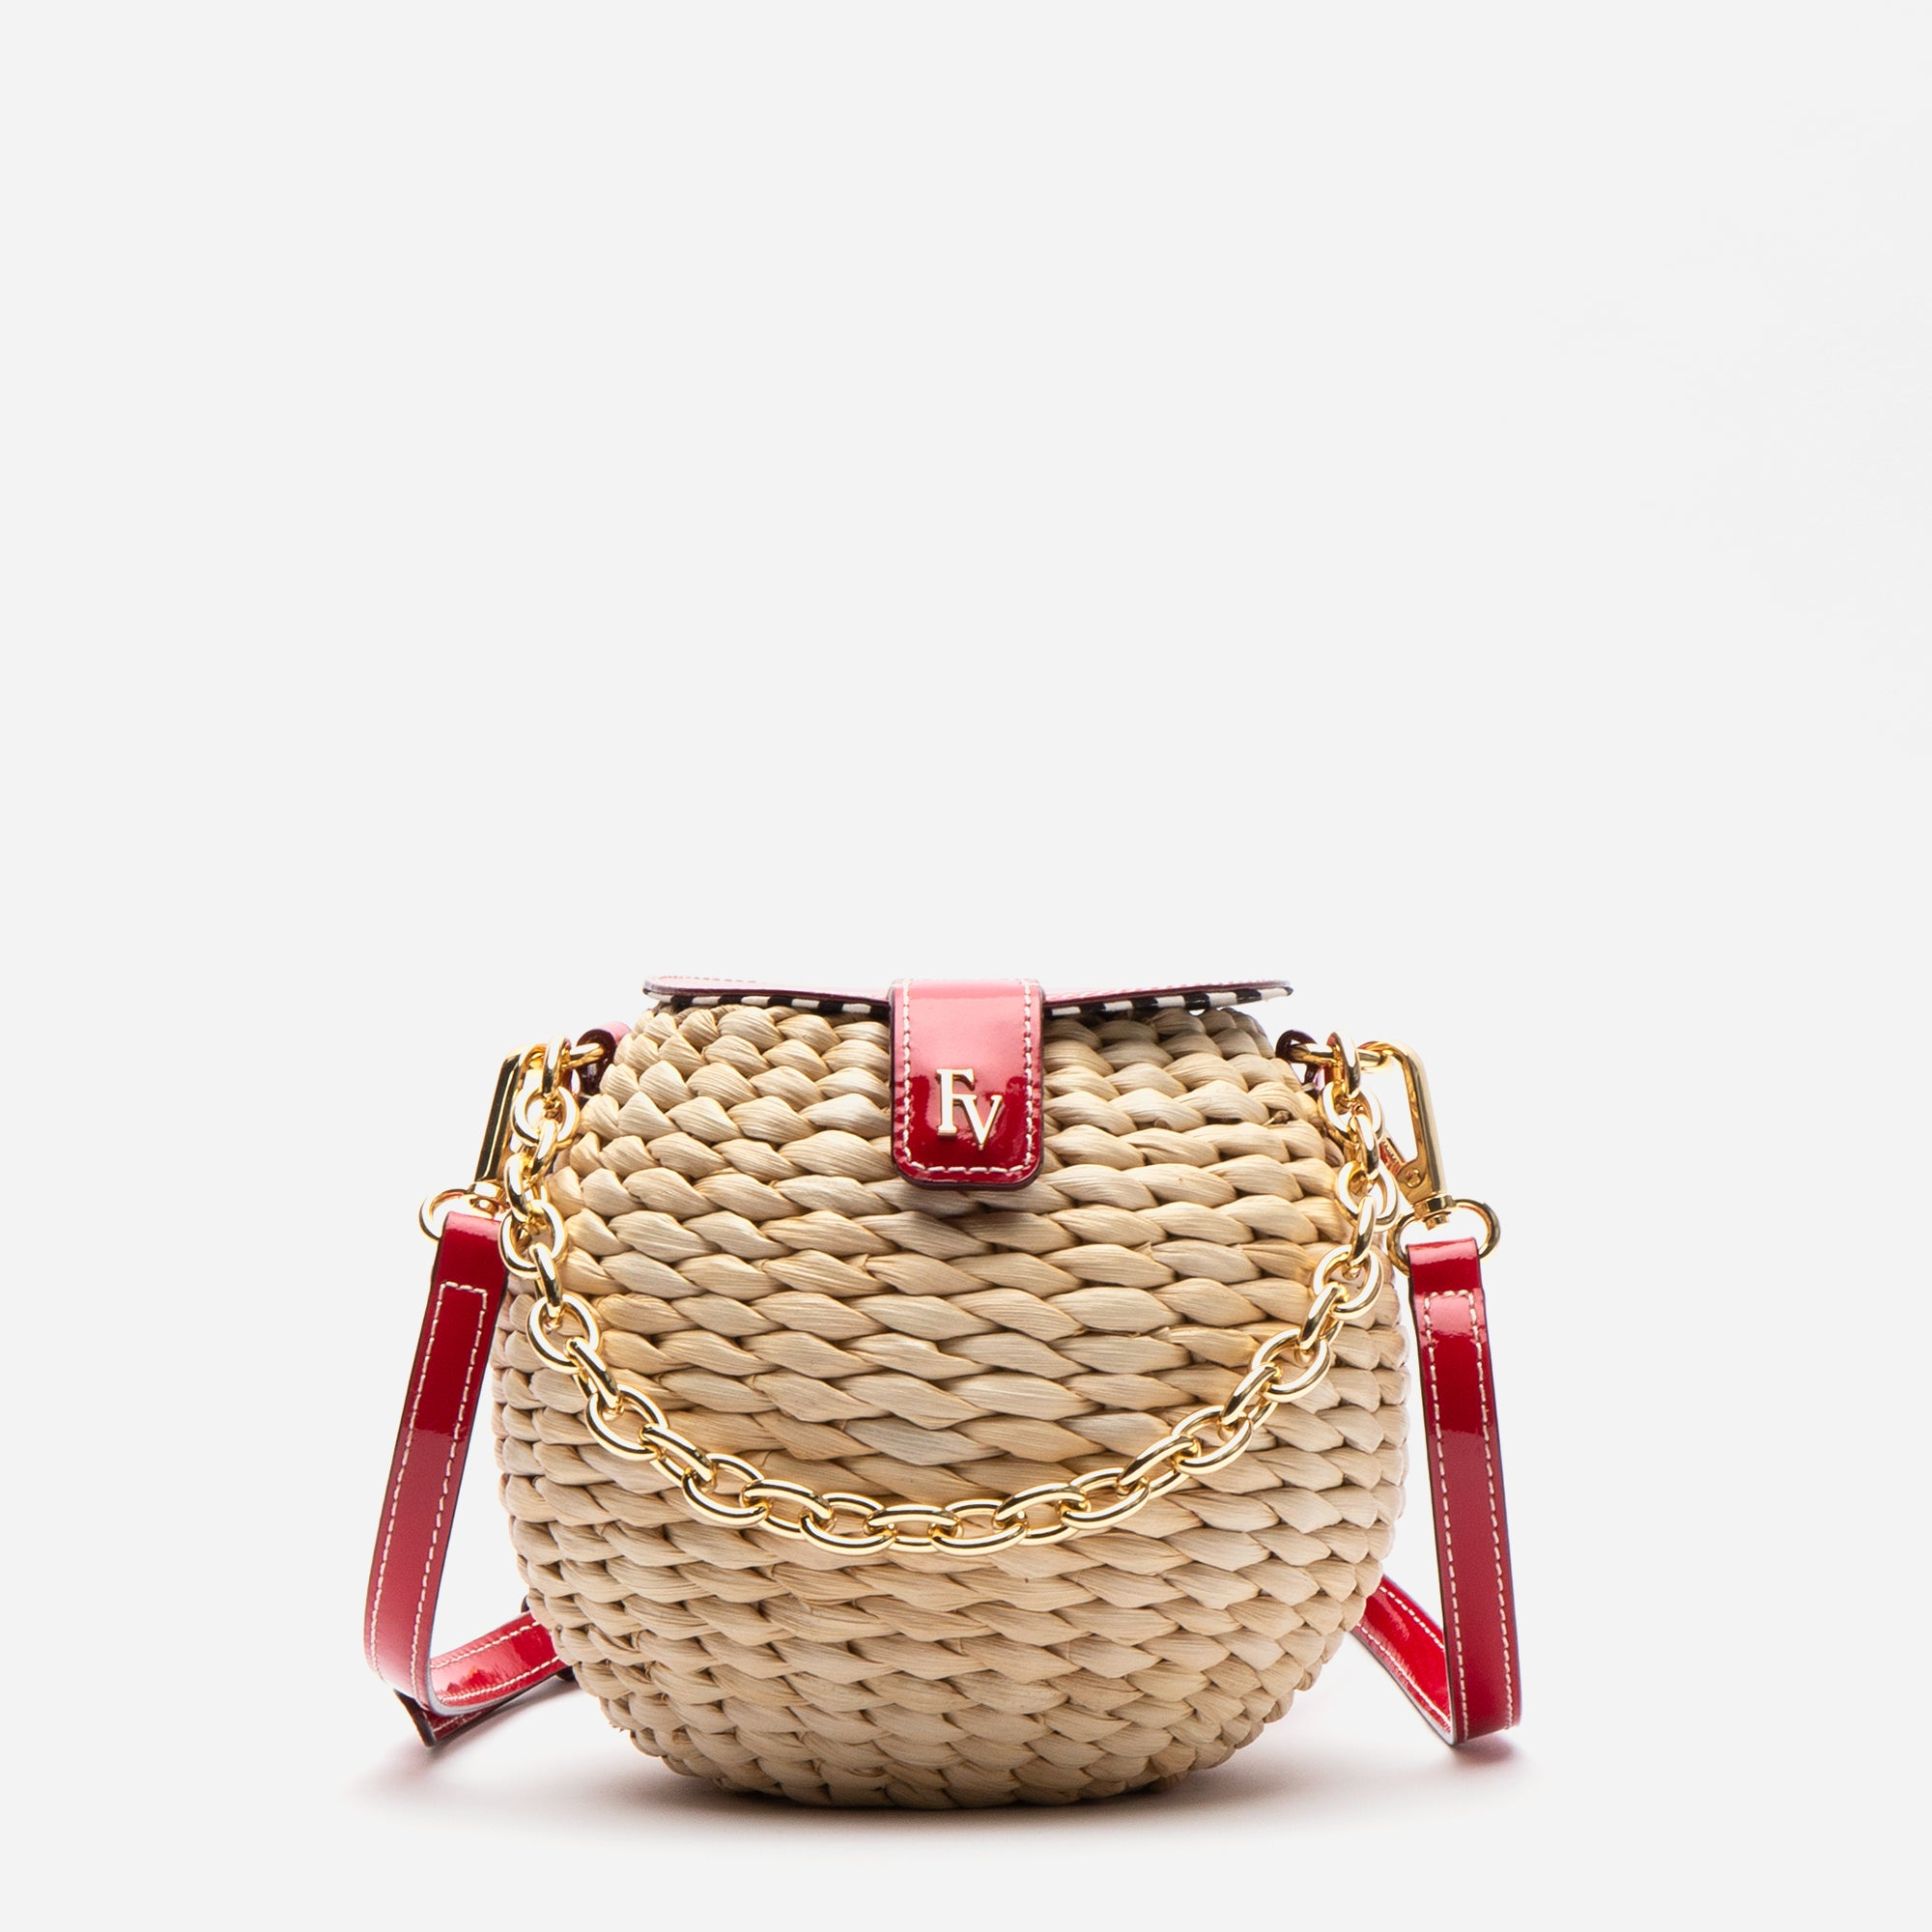 Honeypot Basket Crossbody Red Patent